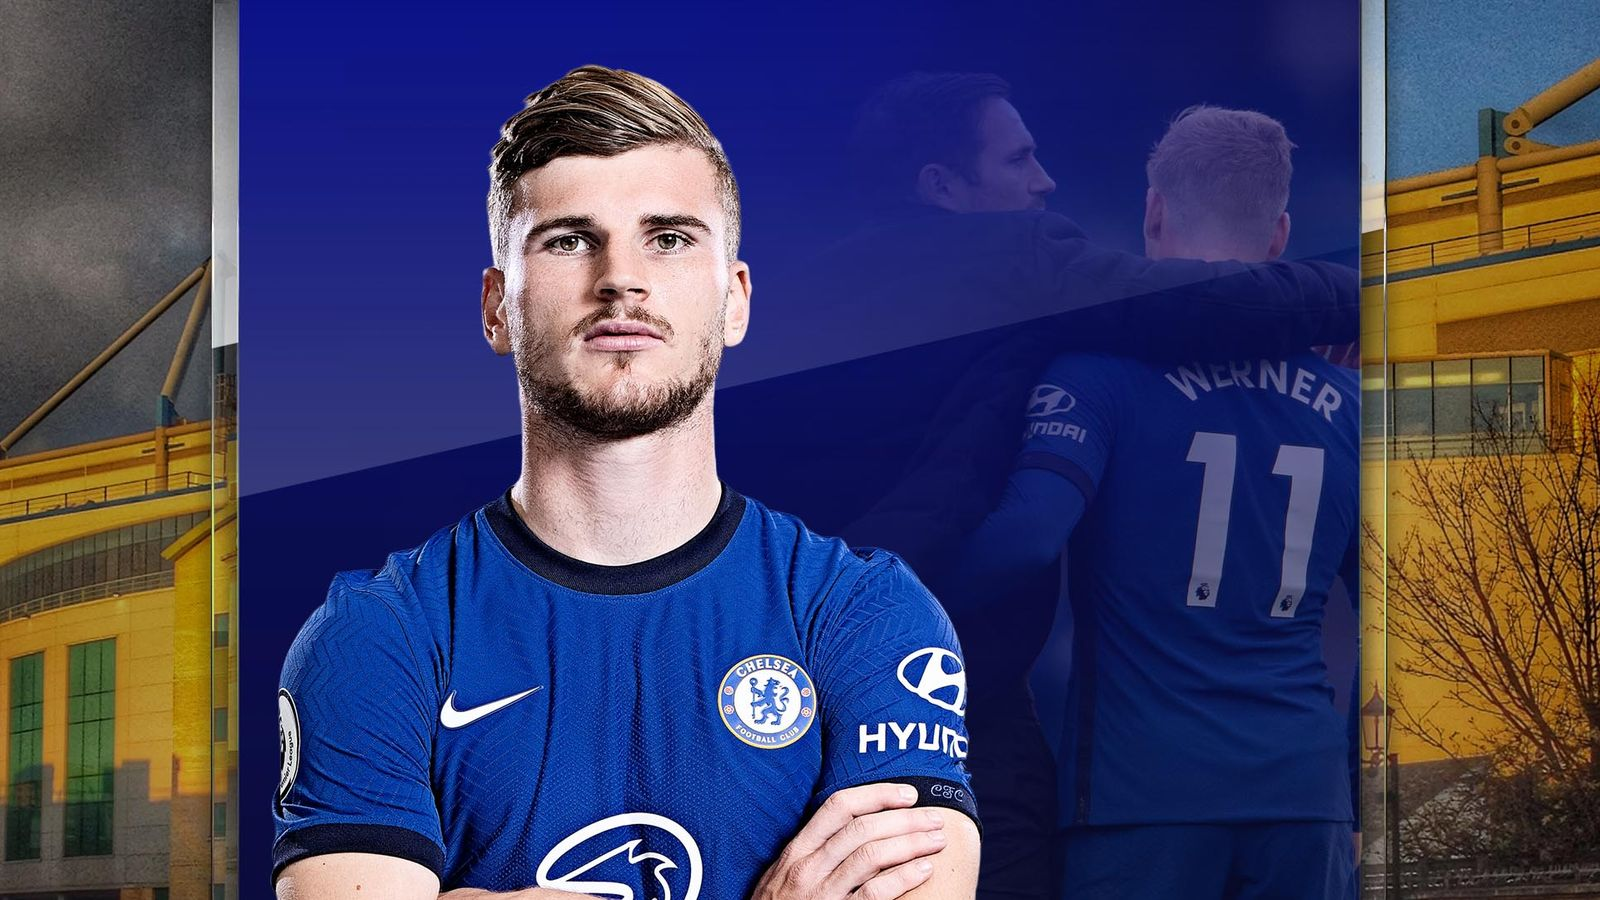 Timo Werner at Chelsea: How can Frank Lampard get the best from him? |  Football News | Sky Sports